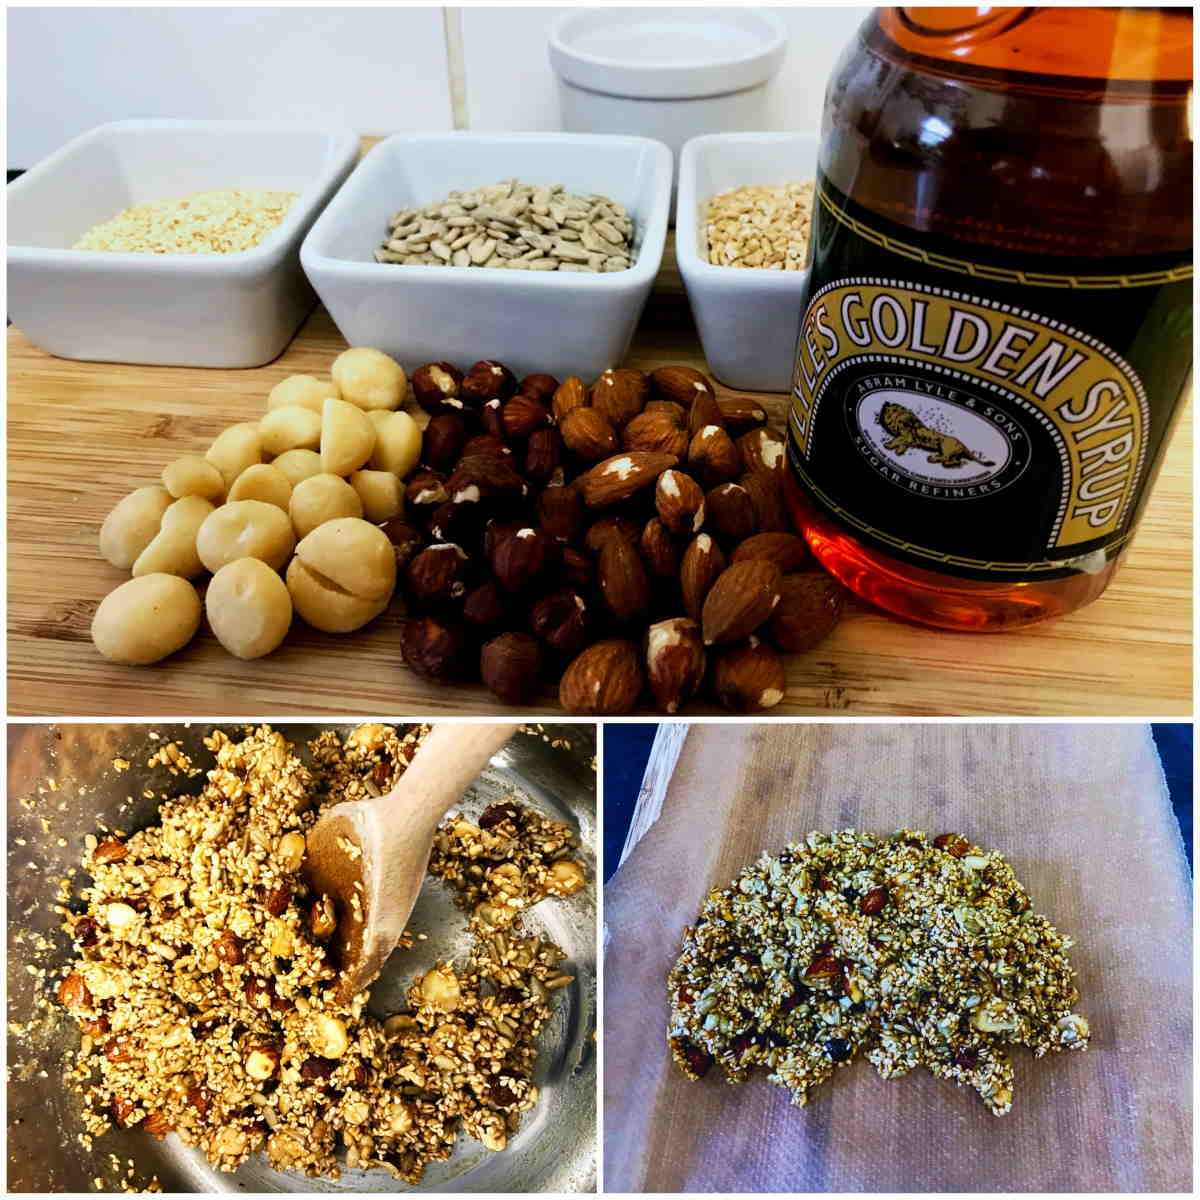 Caramel Nut Crunch Bars Ingredients Collage